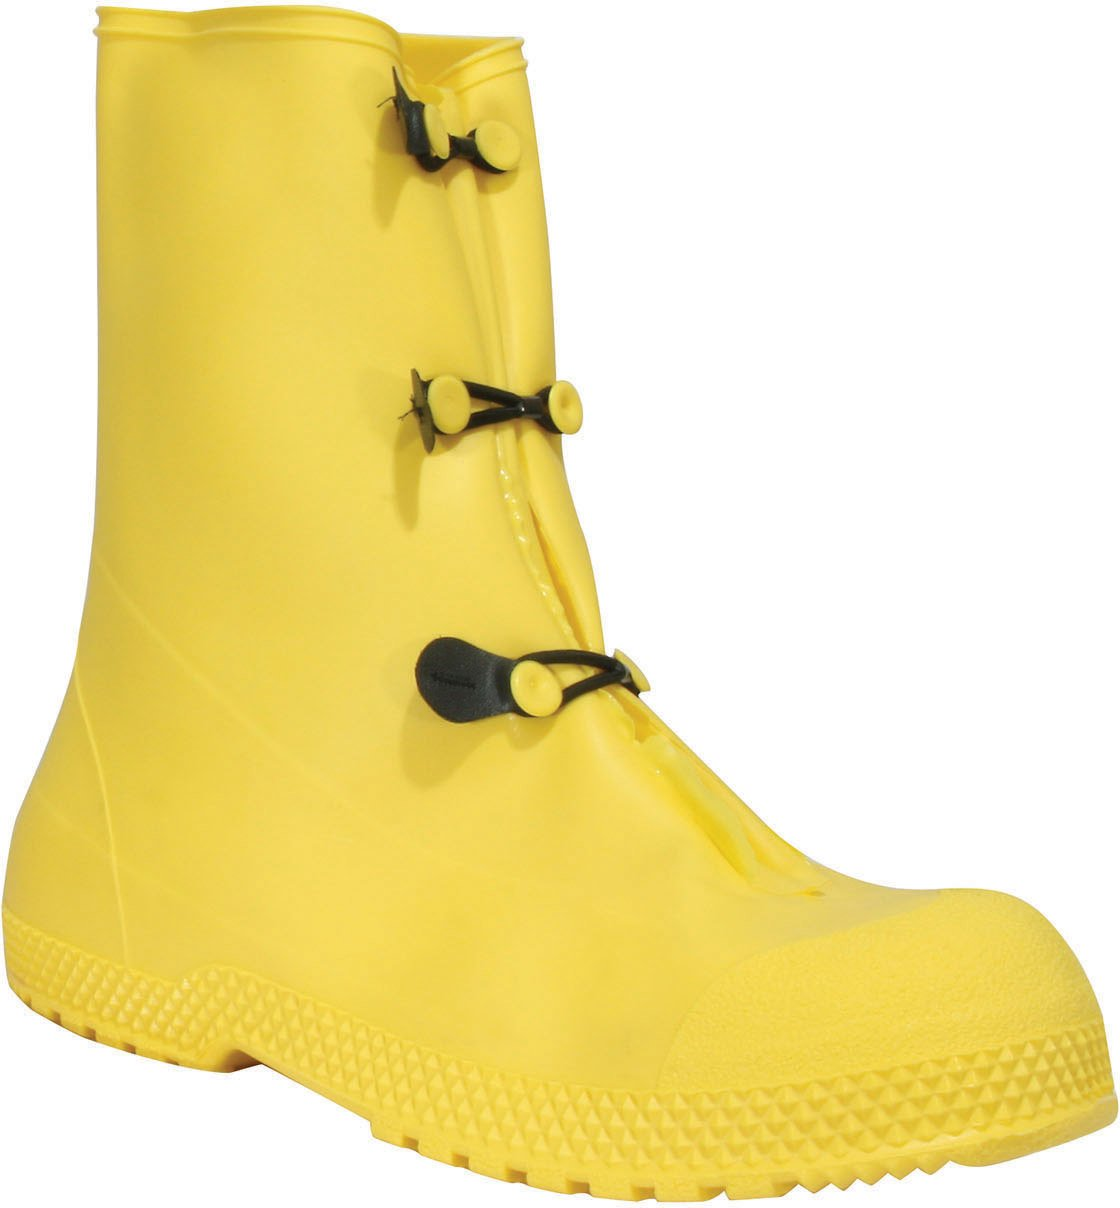 Servus SuperFit 12'' PVC Dual Compound Men's Overboots, Yellow (11926-Bagged)